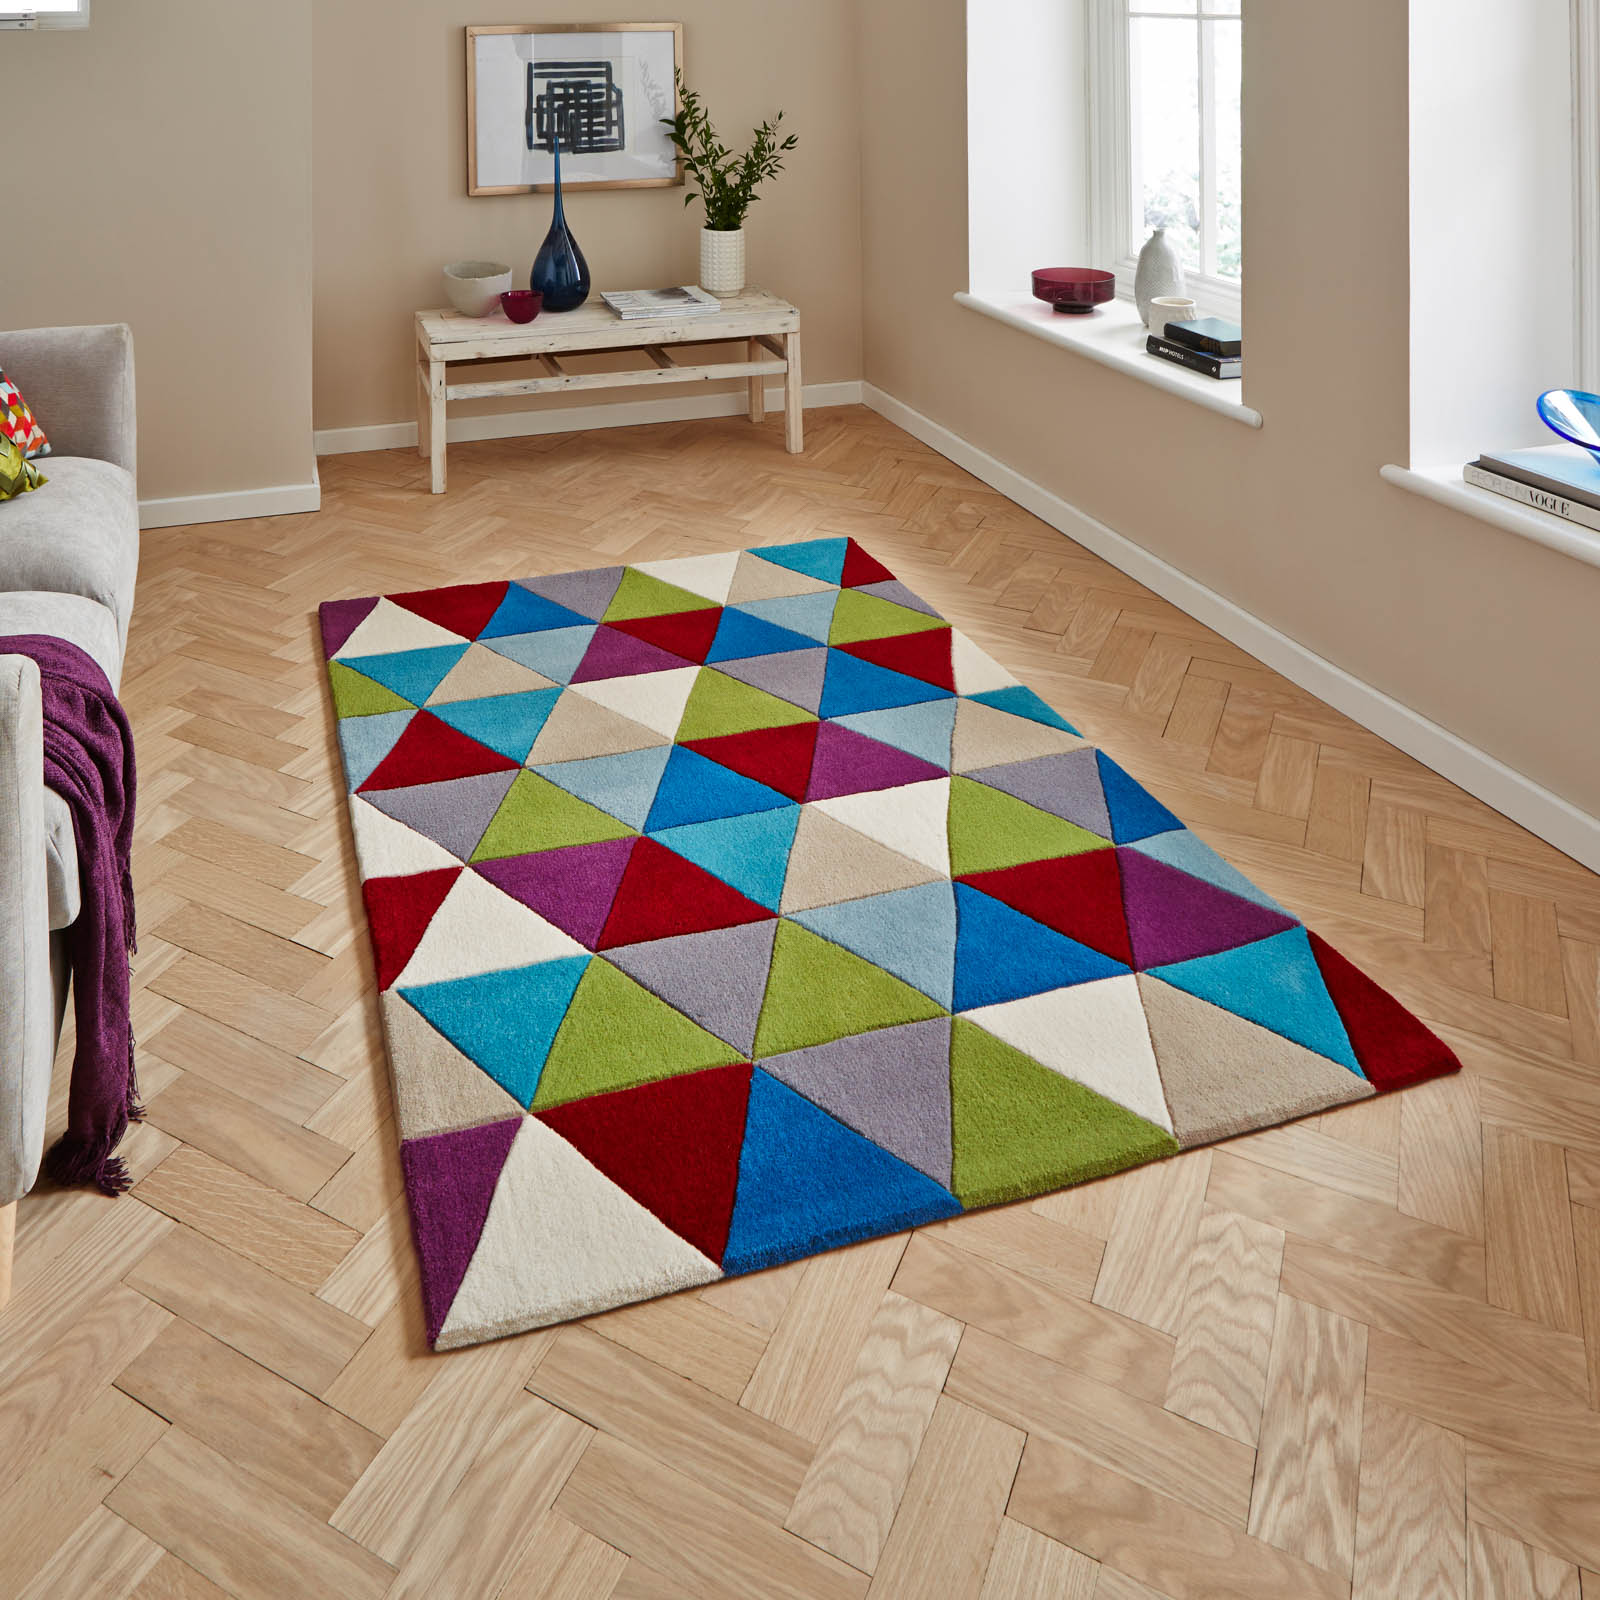 Hong Kong HK6809 Multicoloured Rugs